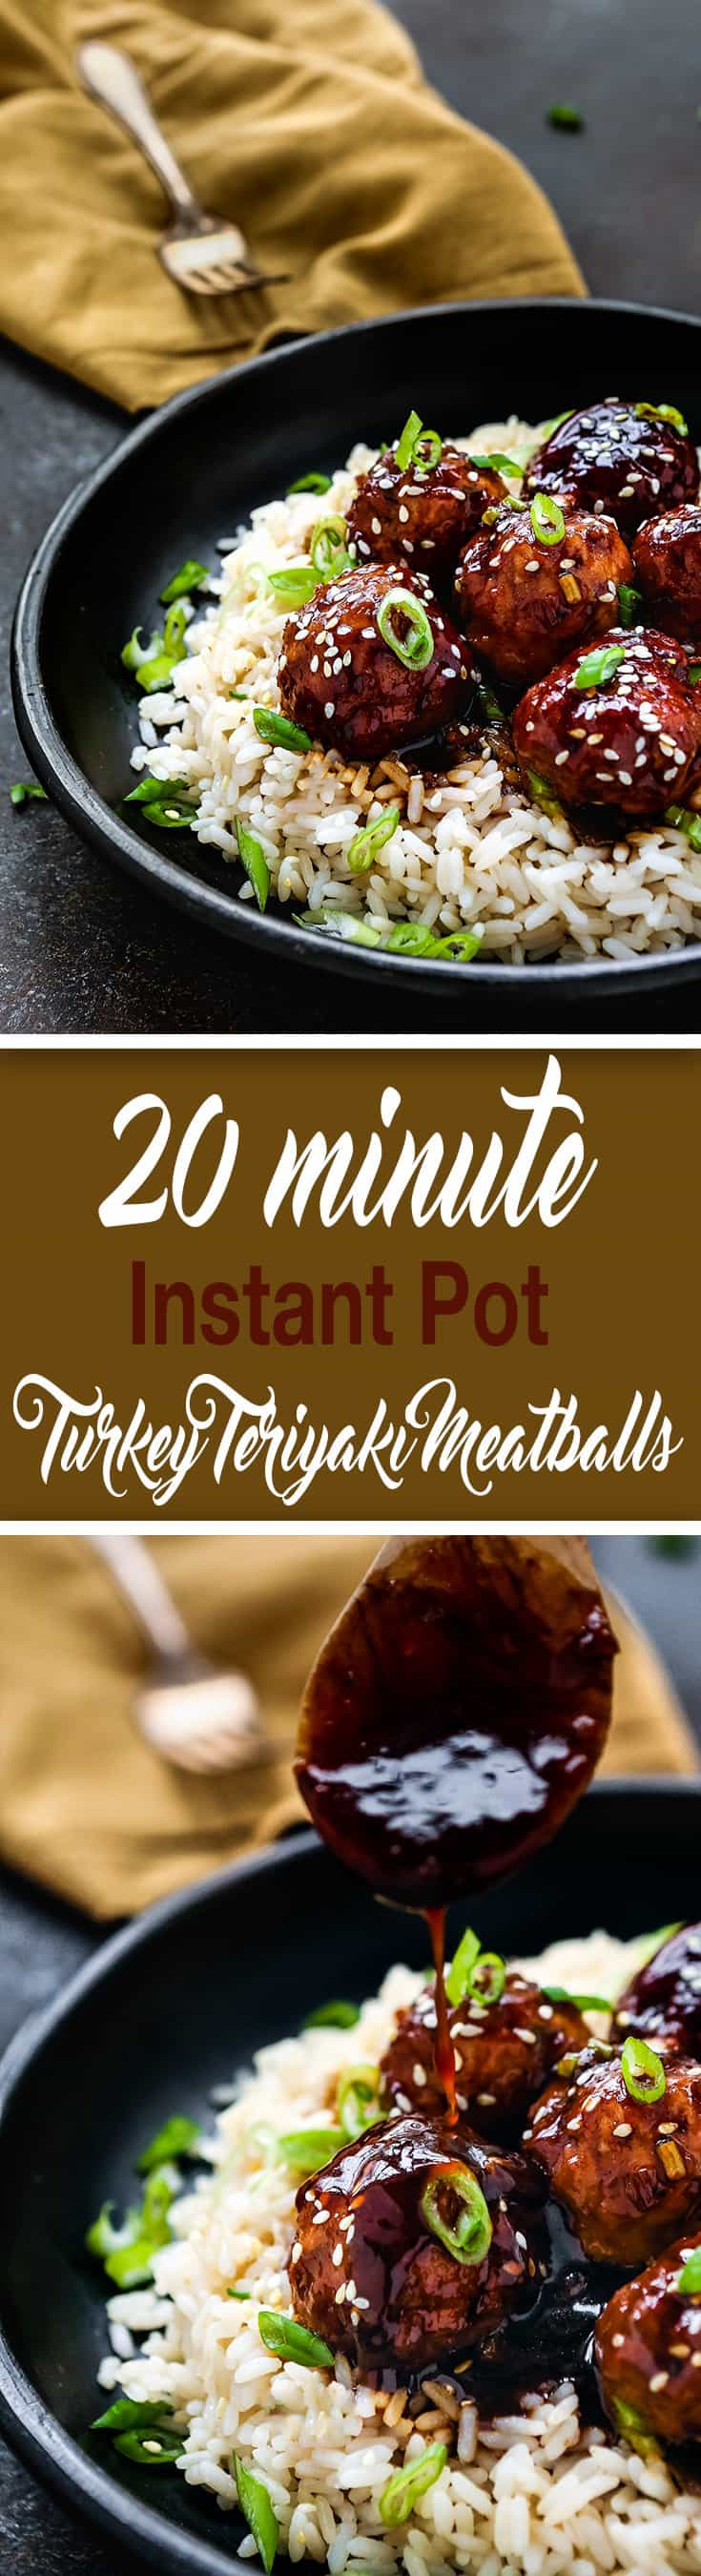 These 20- Minute Instant Pot Teriyaki Turkey Meatballs are perfect when you want a fast, family-friendly meal in a jiffy. These are crazy good and so easy. Serve over your favorite bowl of rice, quinoa, or steamed veggies. https://mommyshomecooking.com